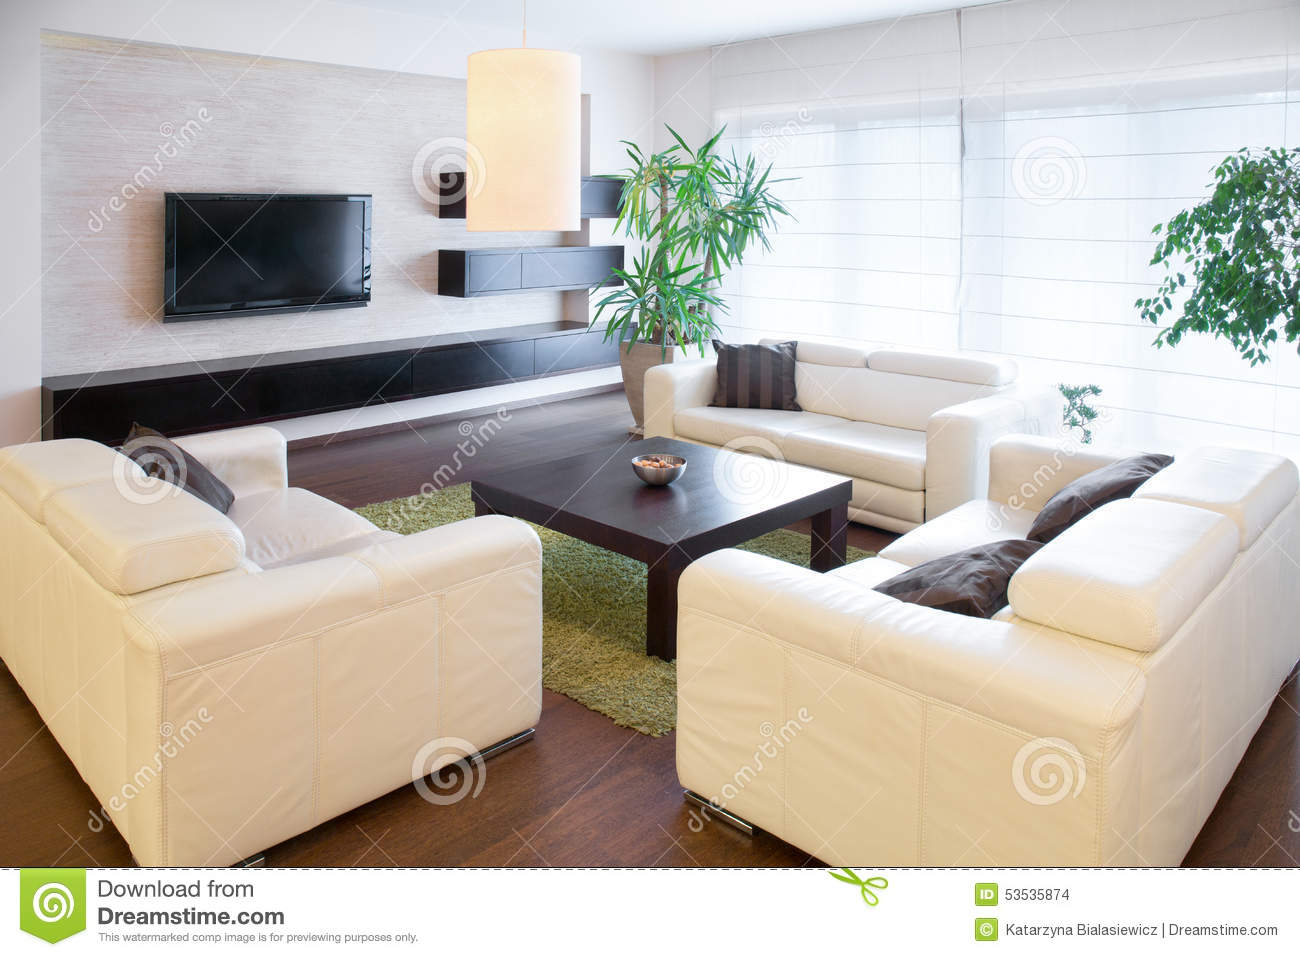 comfortable white sofas stock photo image 53535874. Black Bedroom Furniture Sets. Home Design Ideas